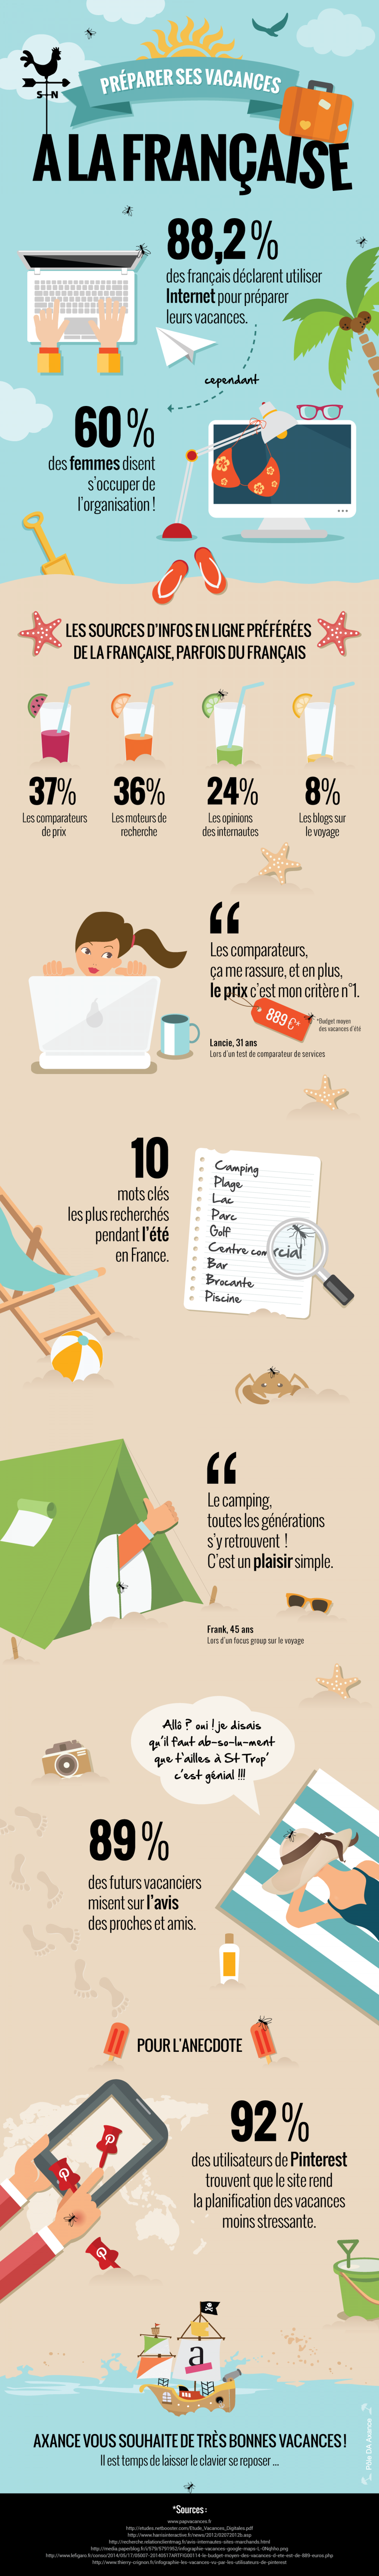 Holidays planning in France Infographic